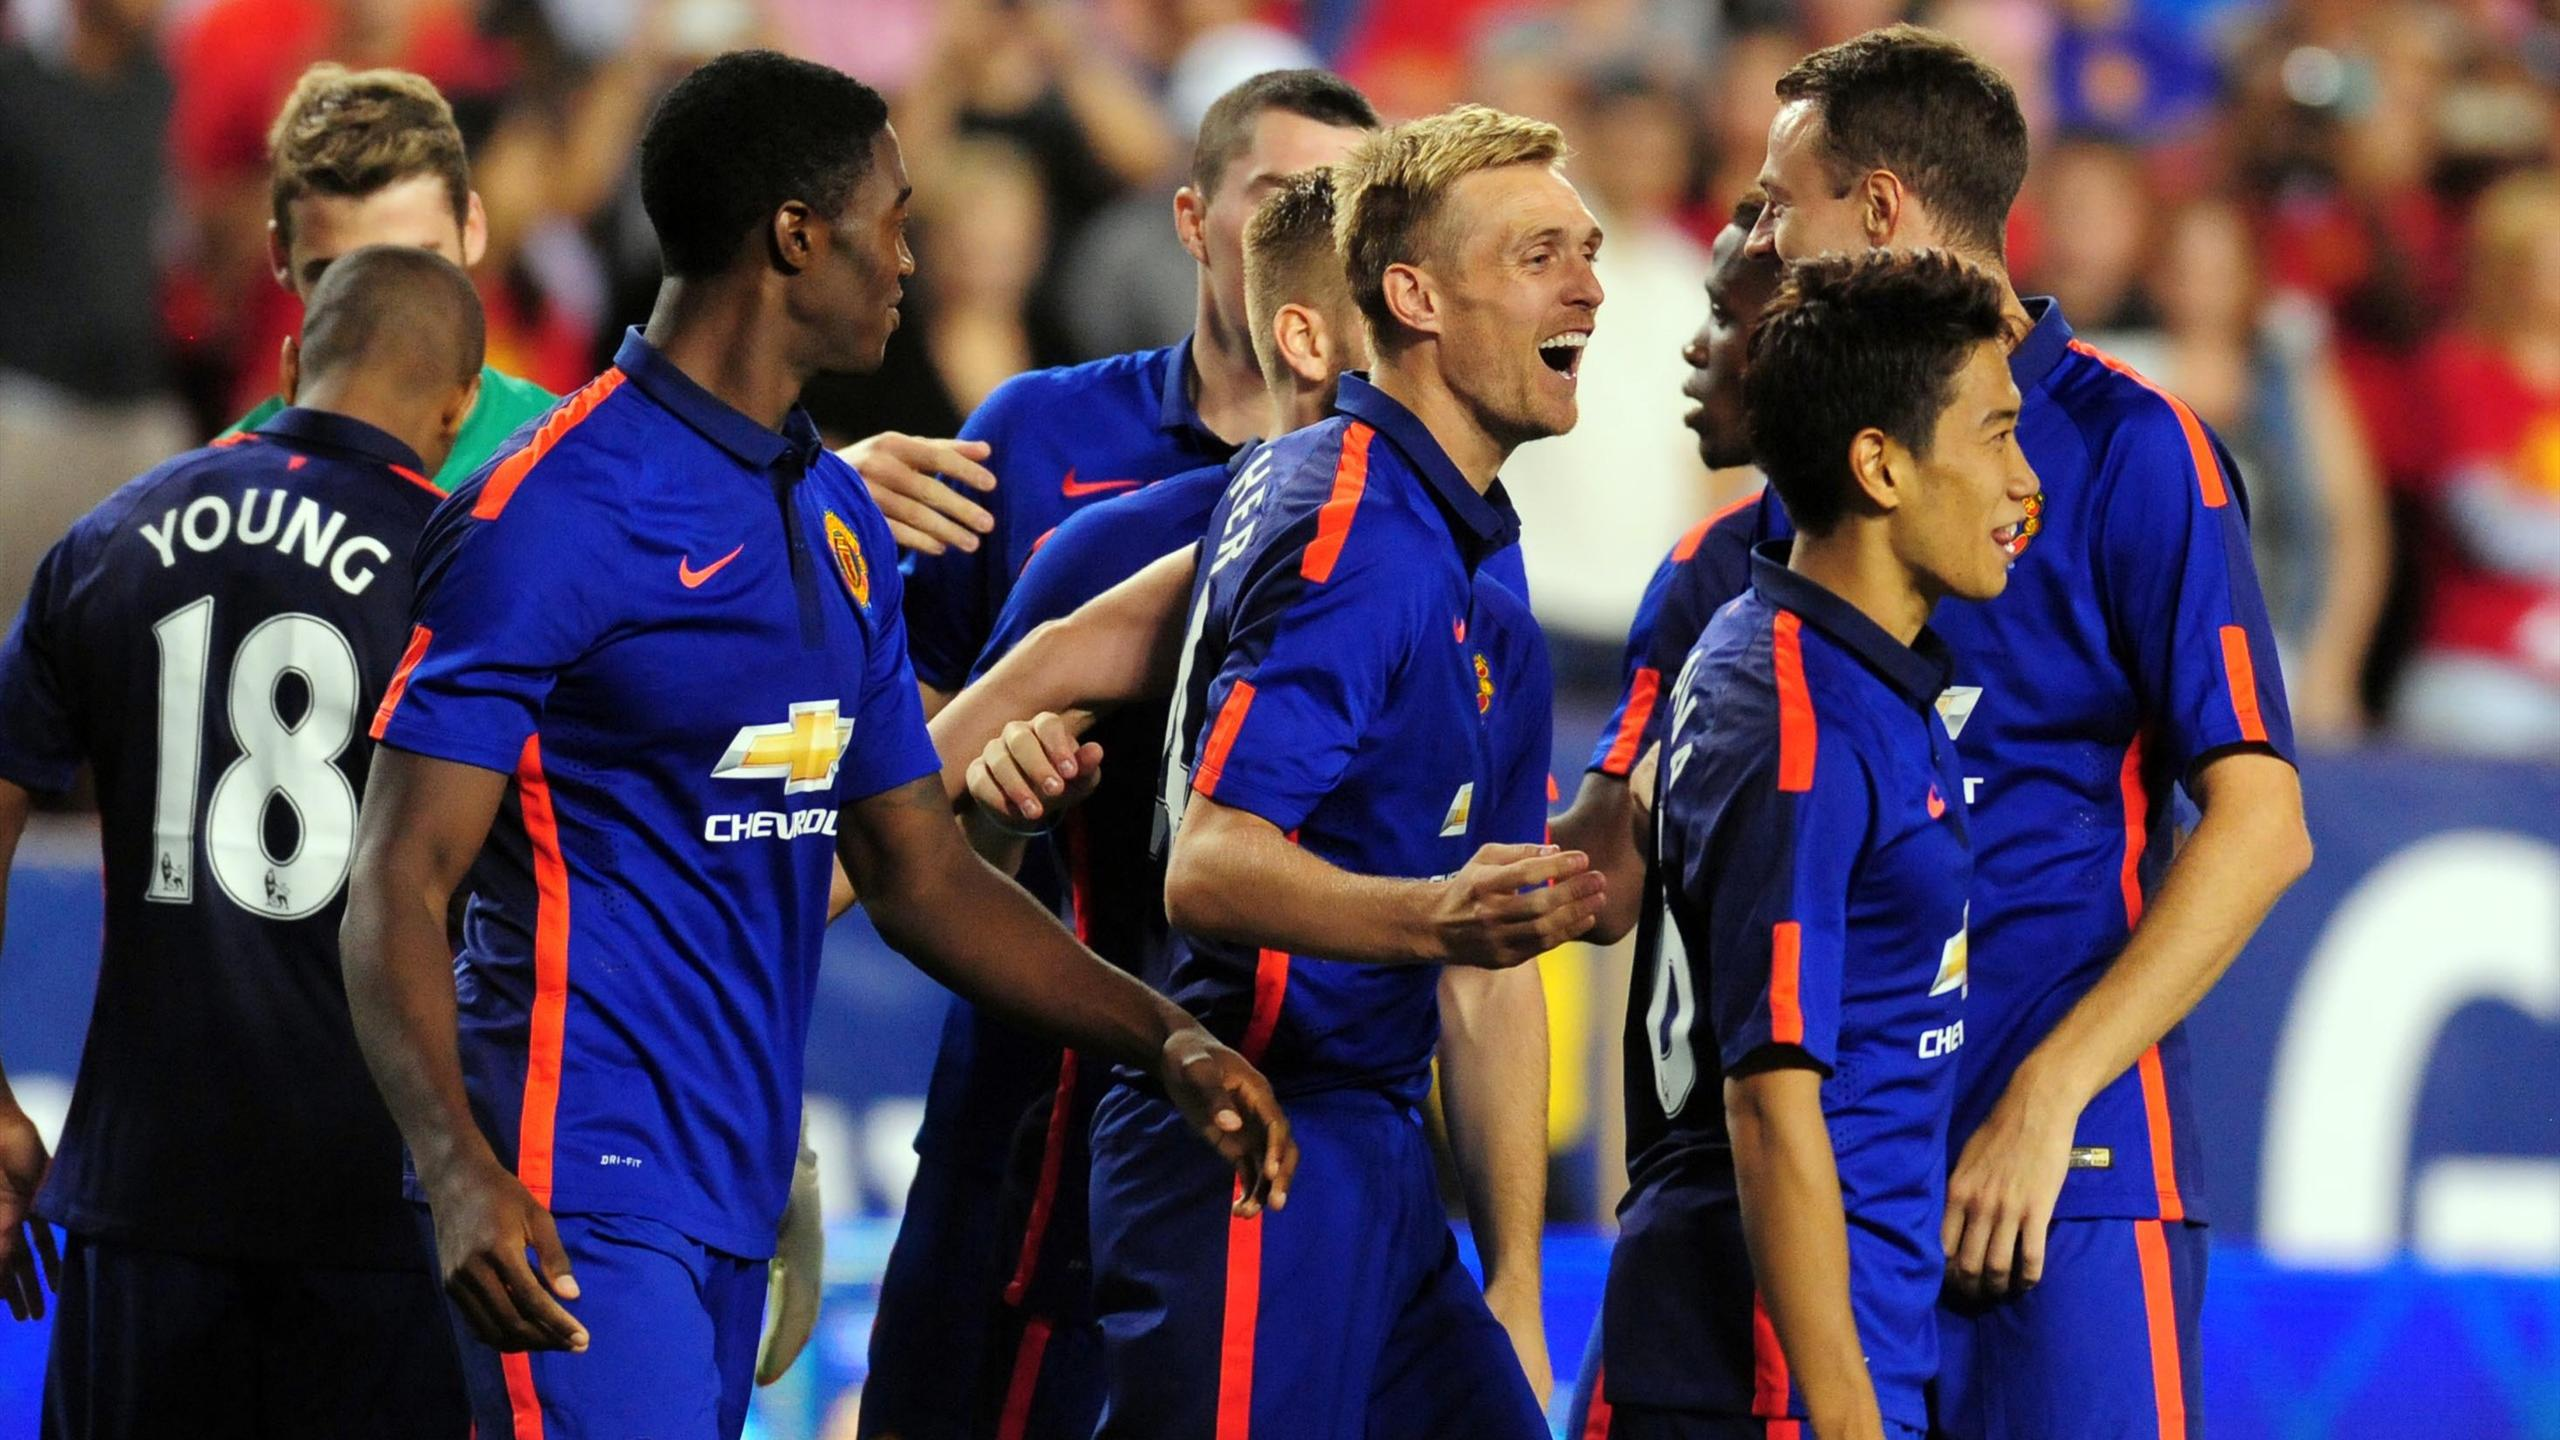 Premier League - Manchester United down Inter on penalties